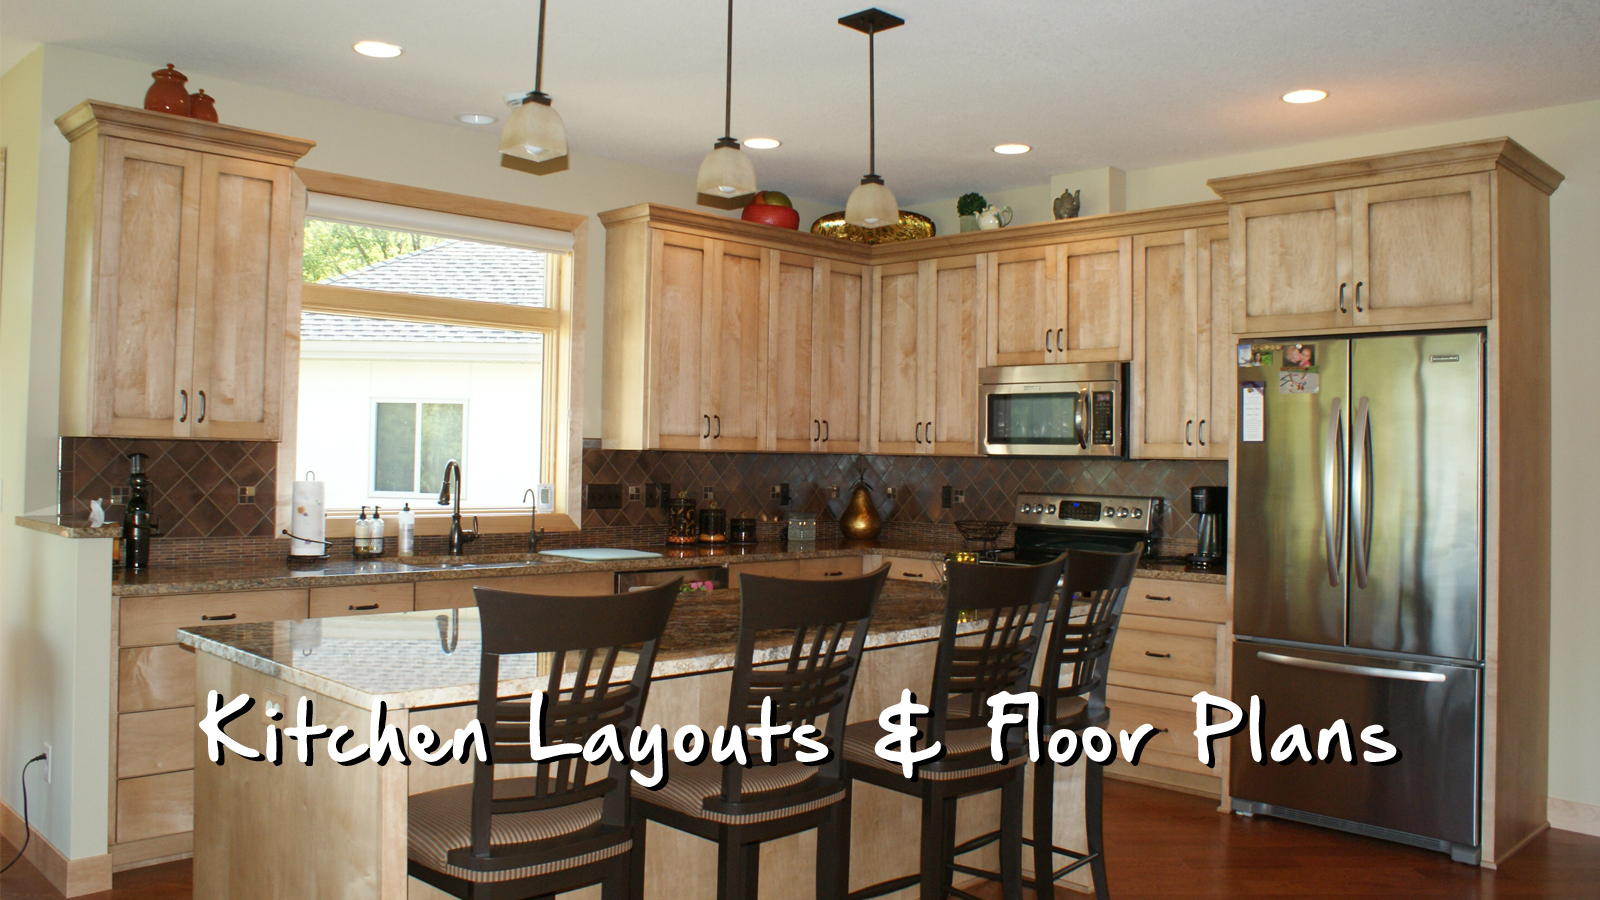 Kitchen Plans Kitchen Layouts And Floor Plans Home Check Plus